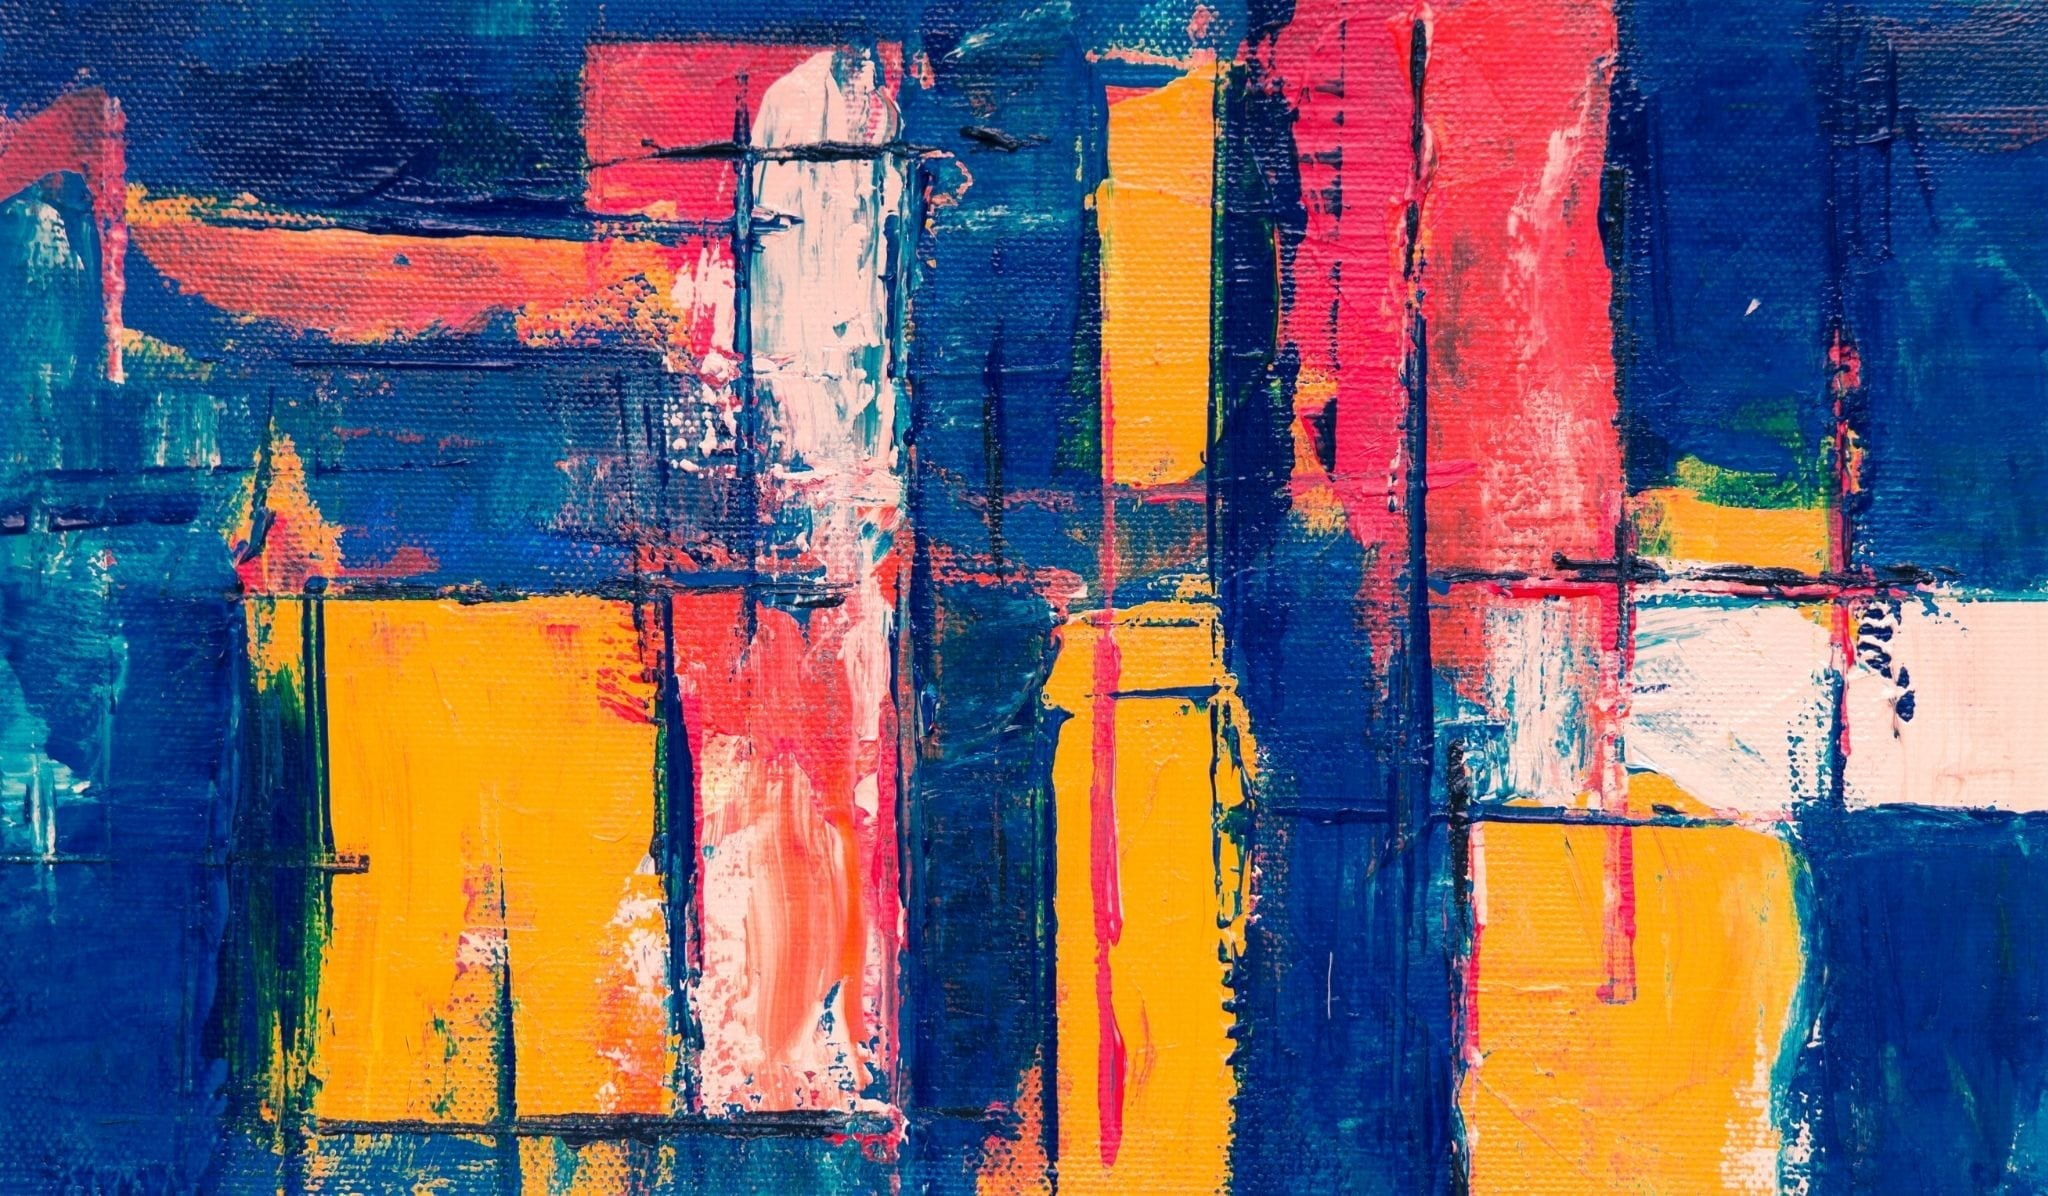 Abstract painting of yellow, blue and red blocks.